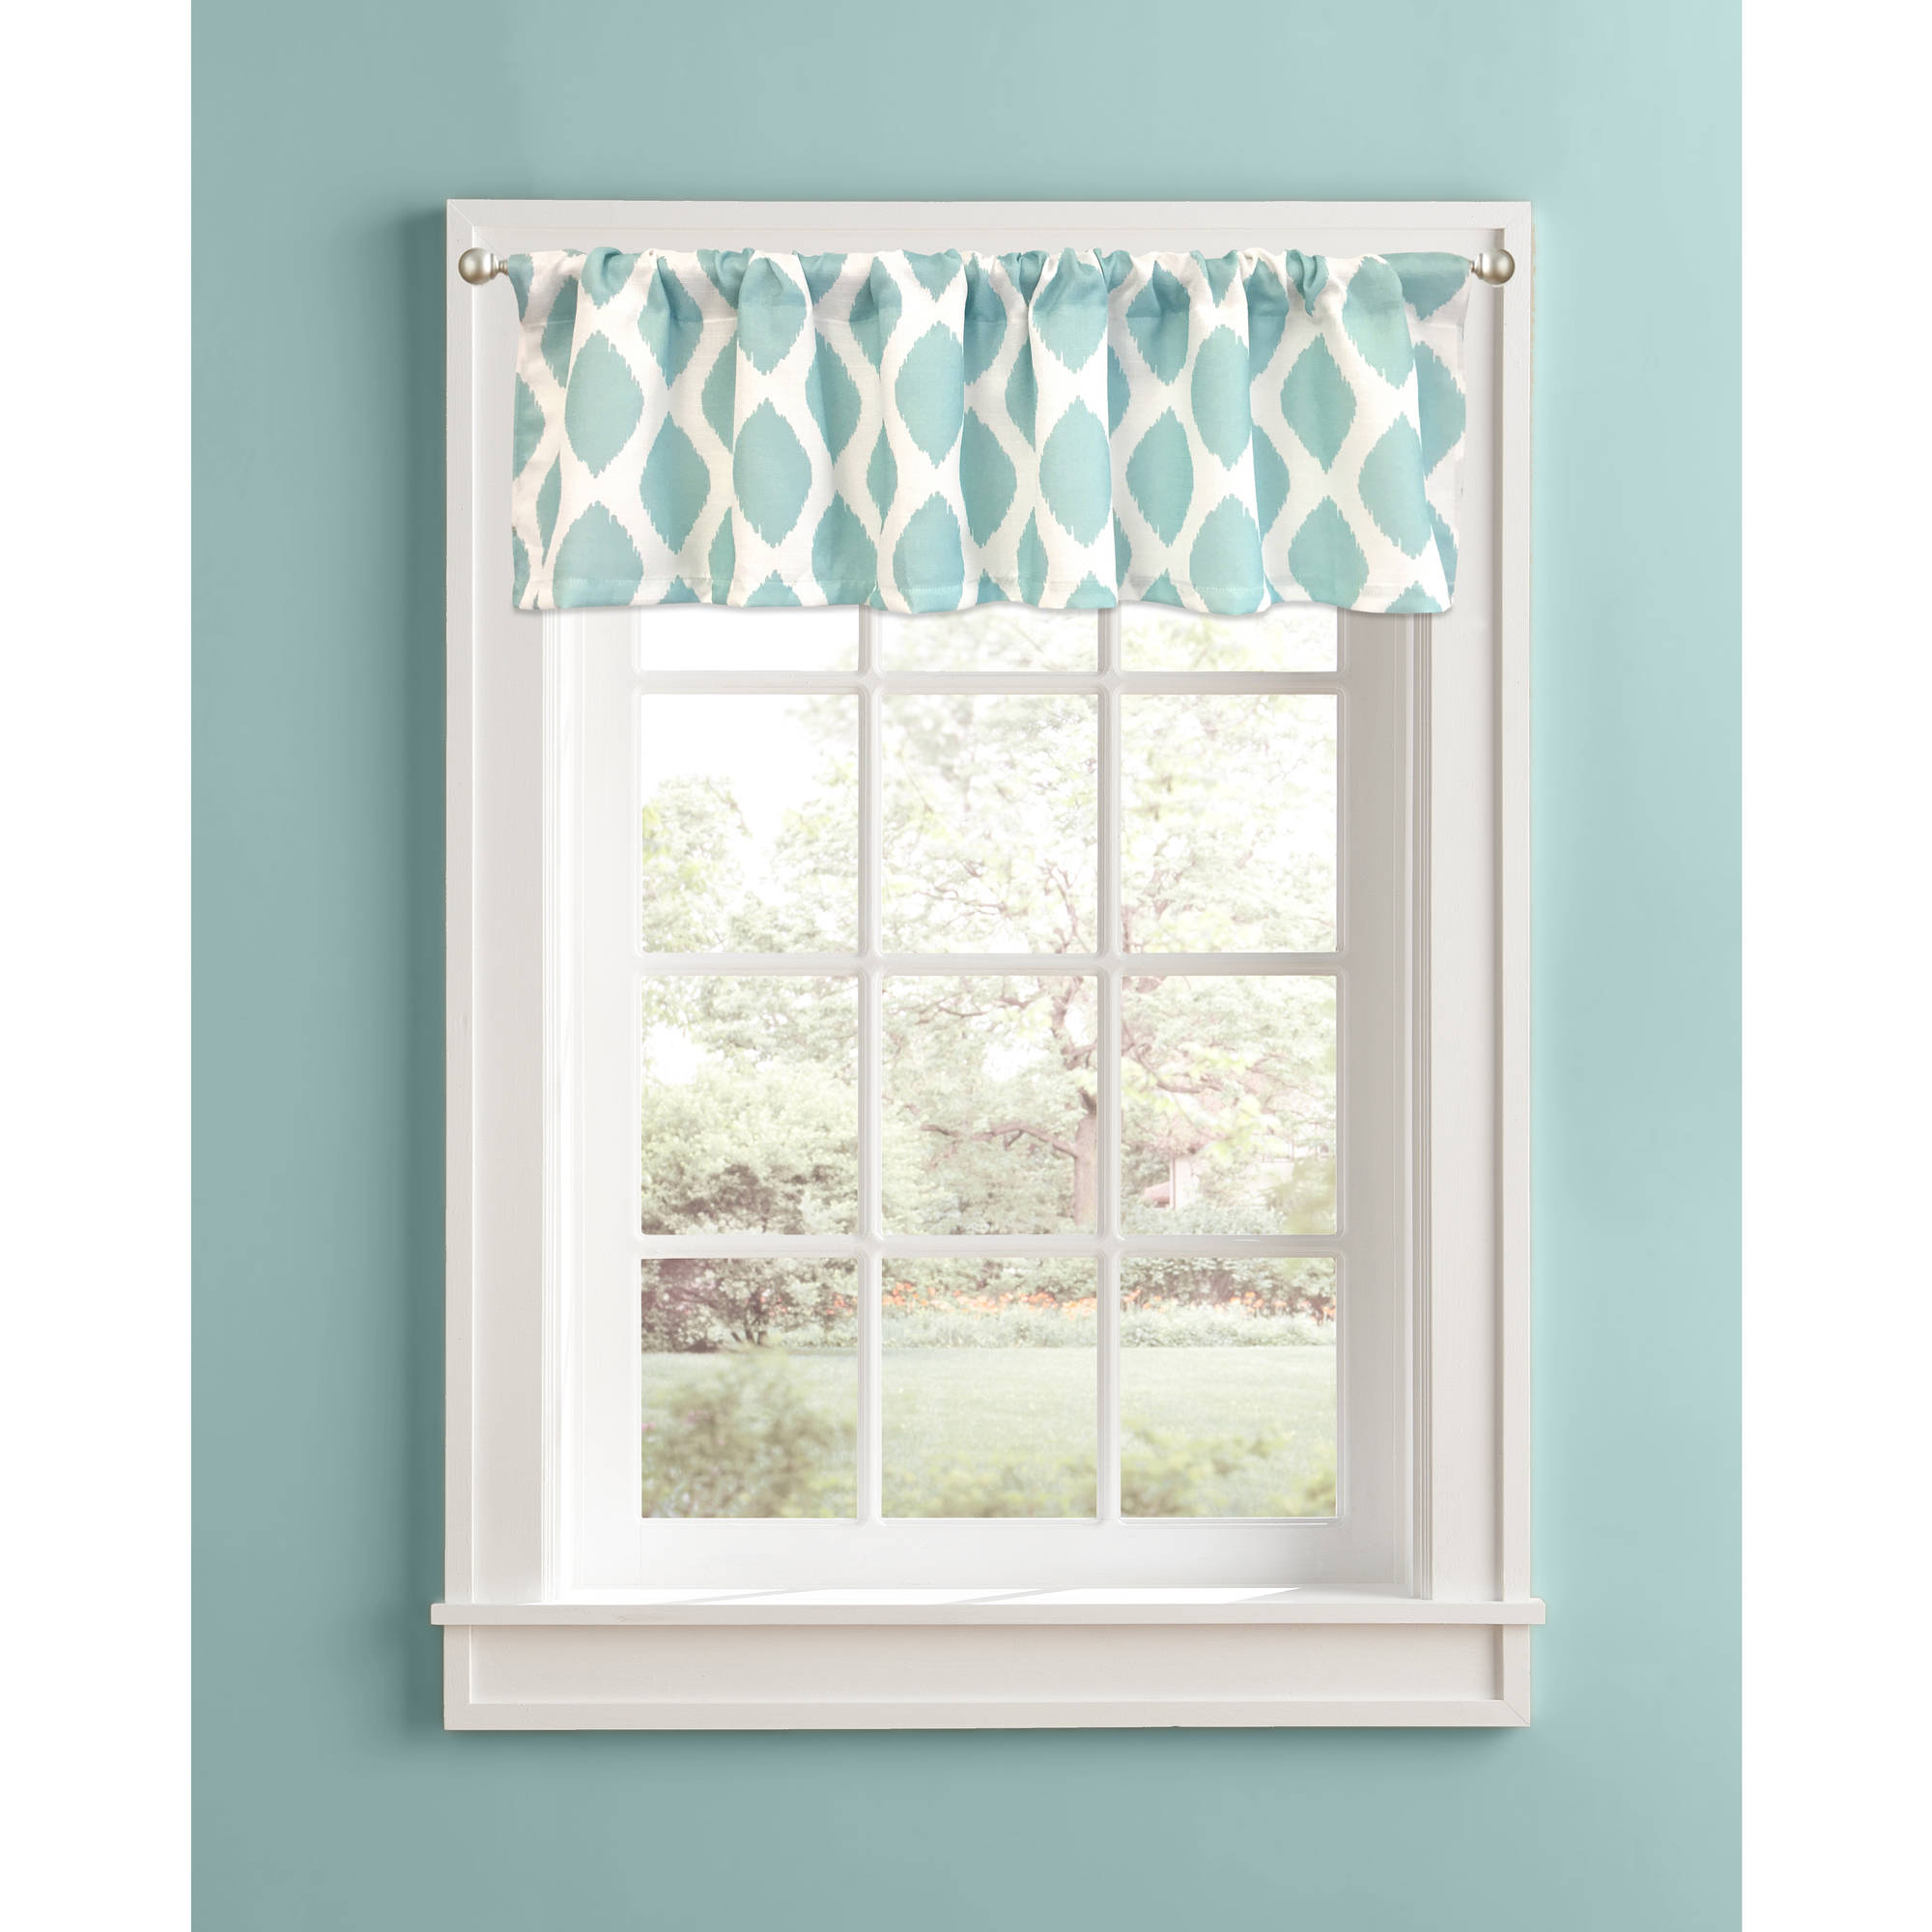 Better Homes and Gardens Aqua Ikat Diamonds Valance by Colordrift LLC